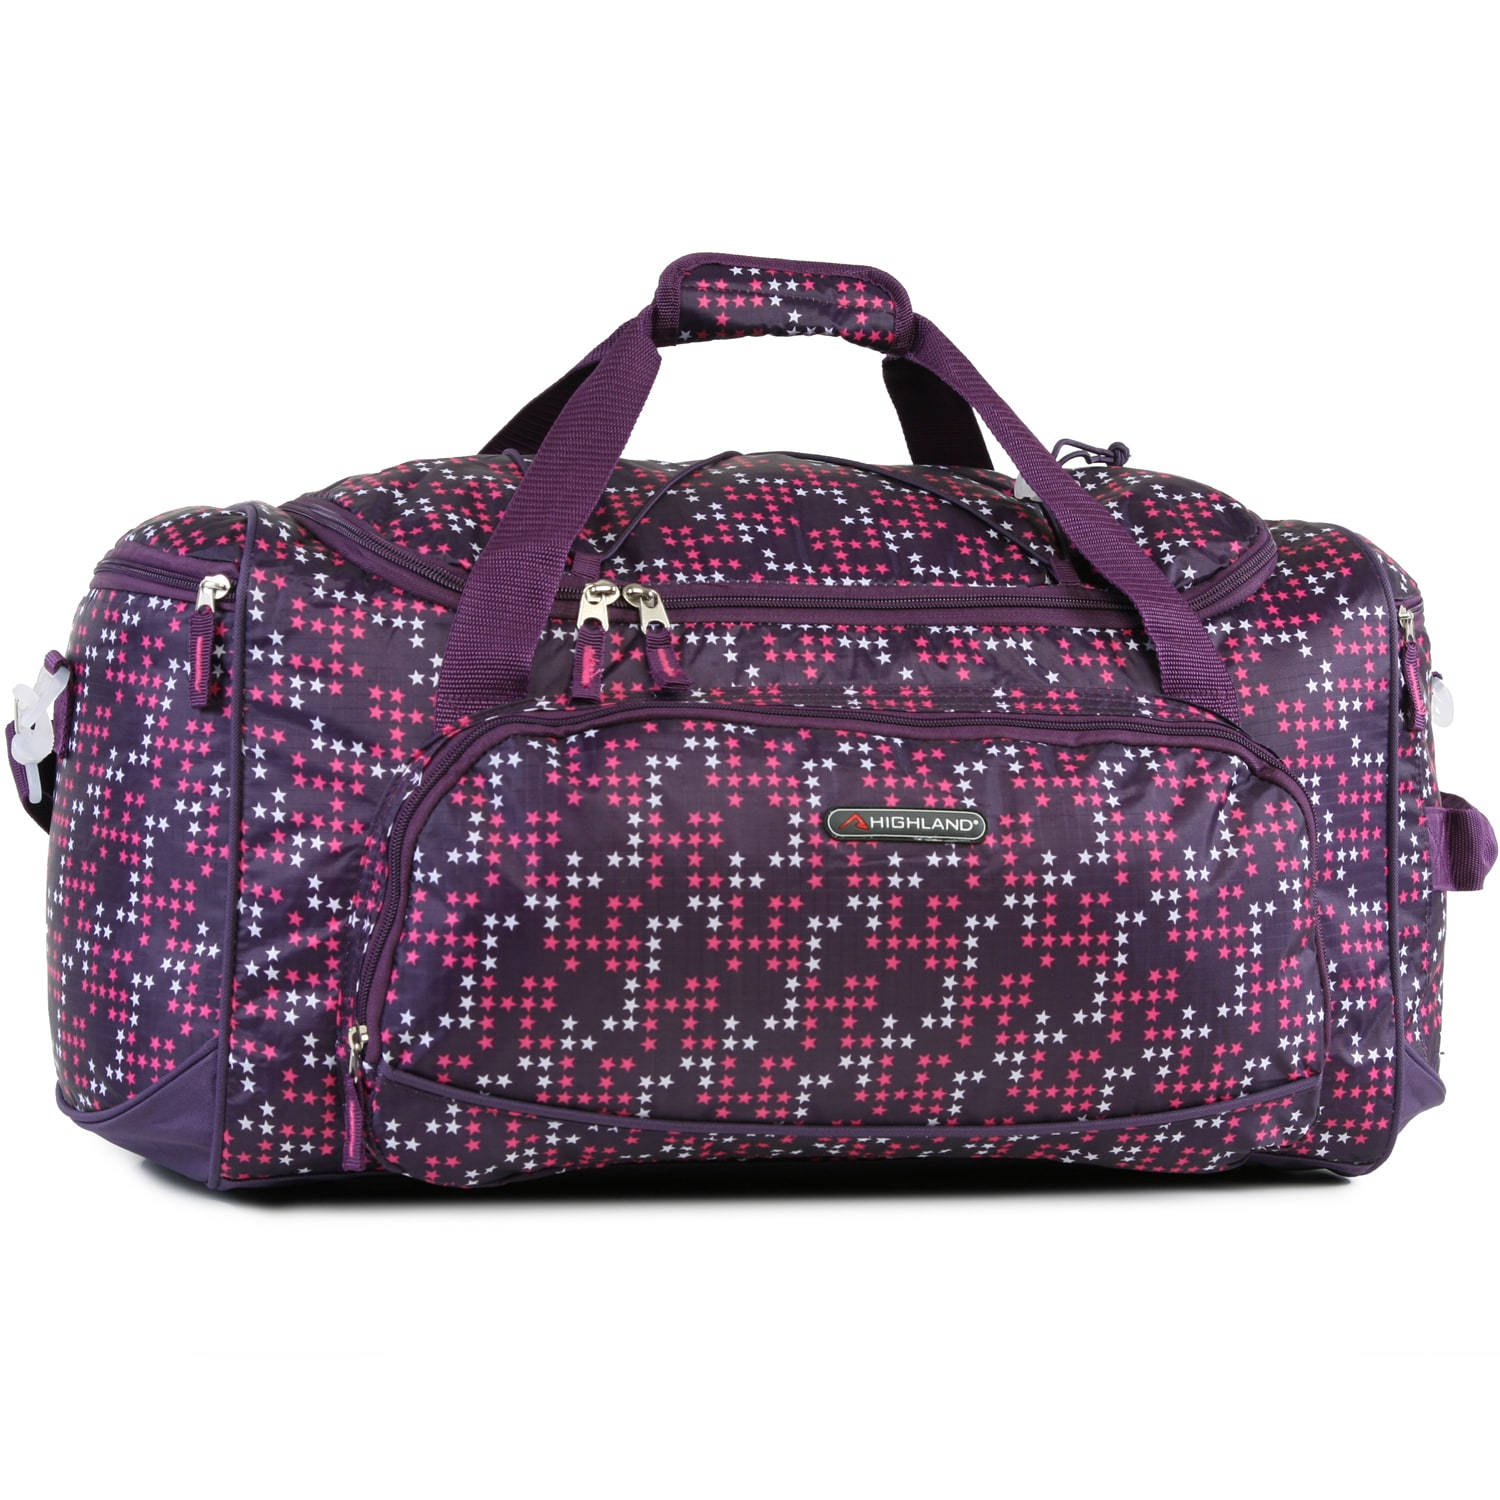 c28ee03f98 Shop Pacific Coast Highland Twinkle Star Purple Medium 22-inch Travel  Duffel Bag - Free Shipping On Orders Over  45 - Overstock.com - 14741782